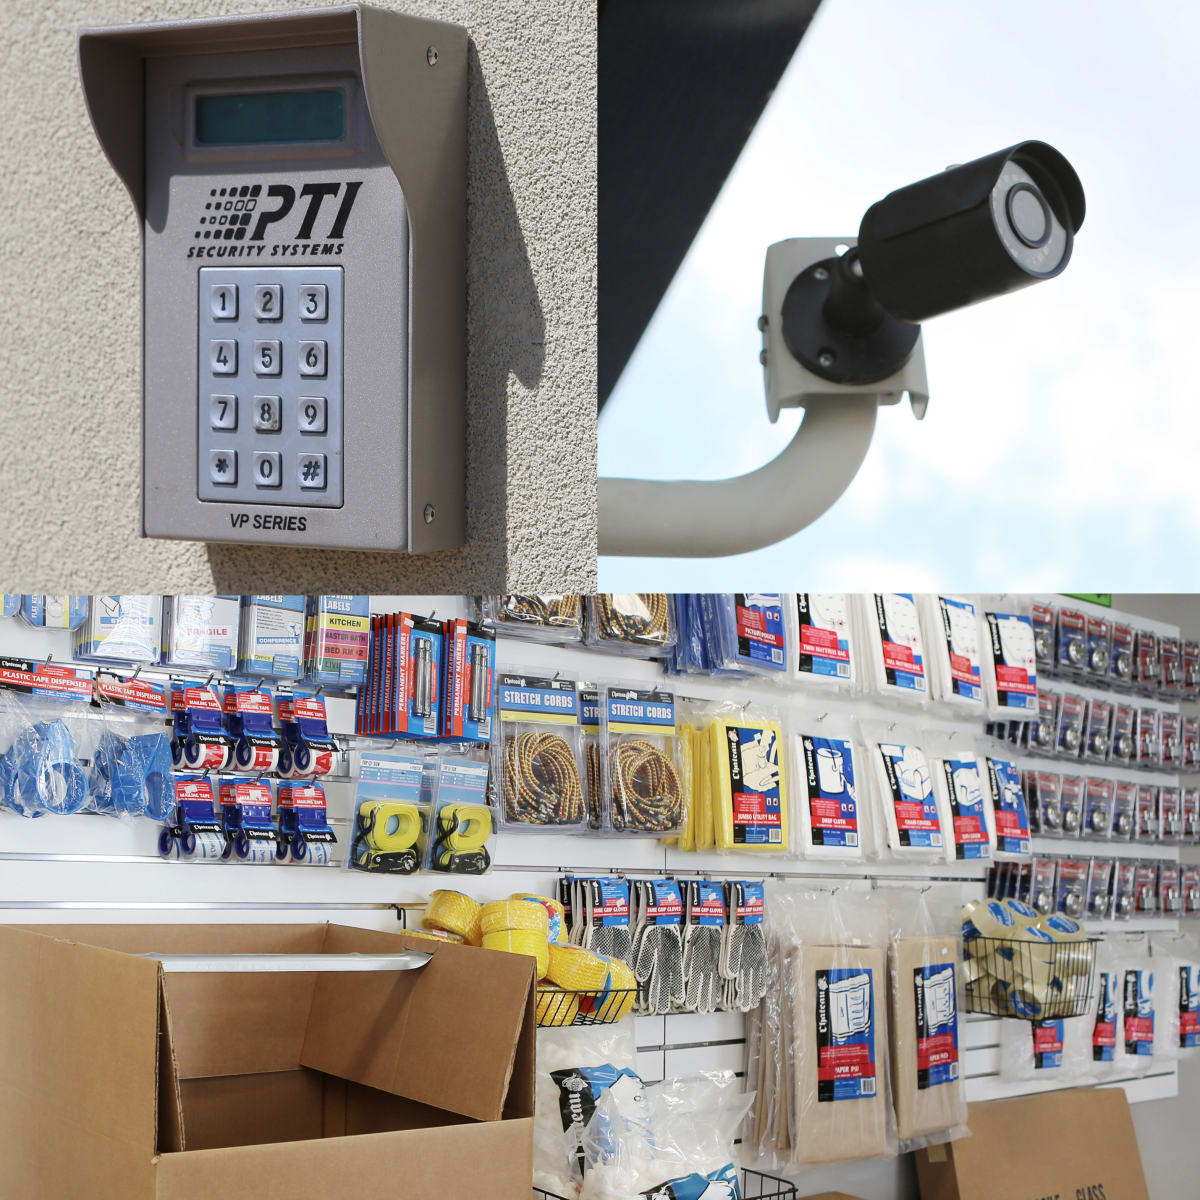 We provide 24 hour security monitoring and sell various moving and packing supplies at Midgard Self Storage in Mulberry, Florida